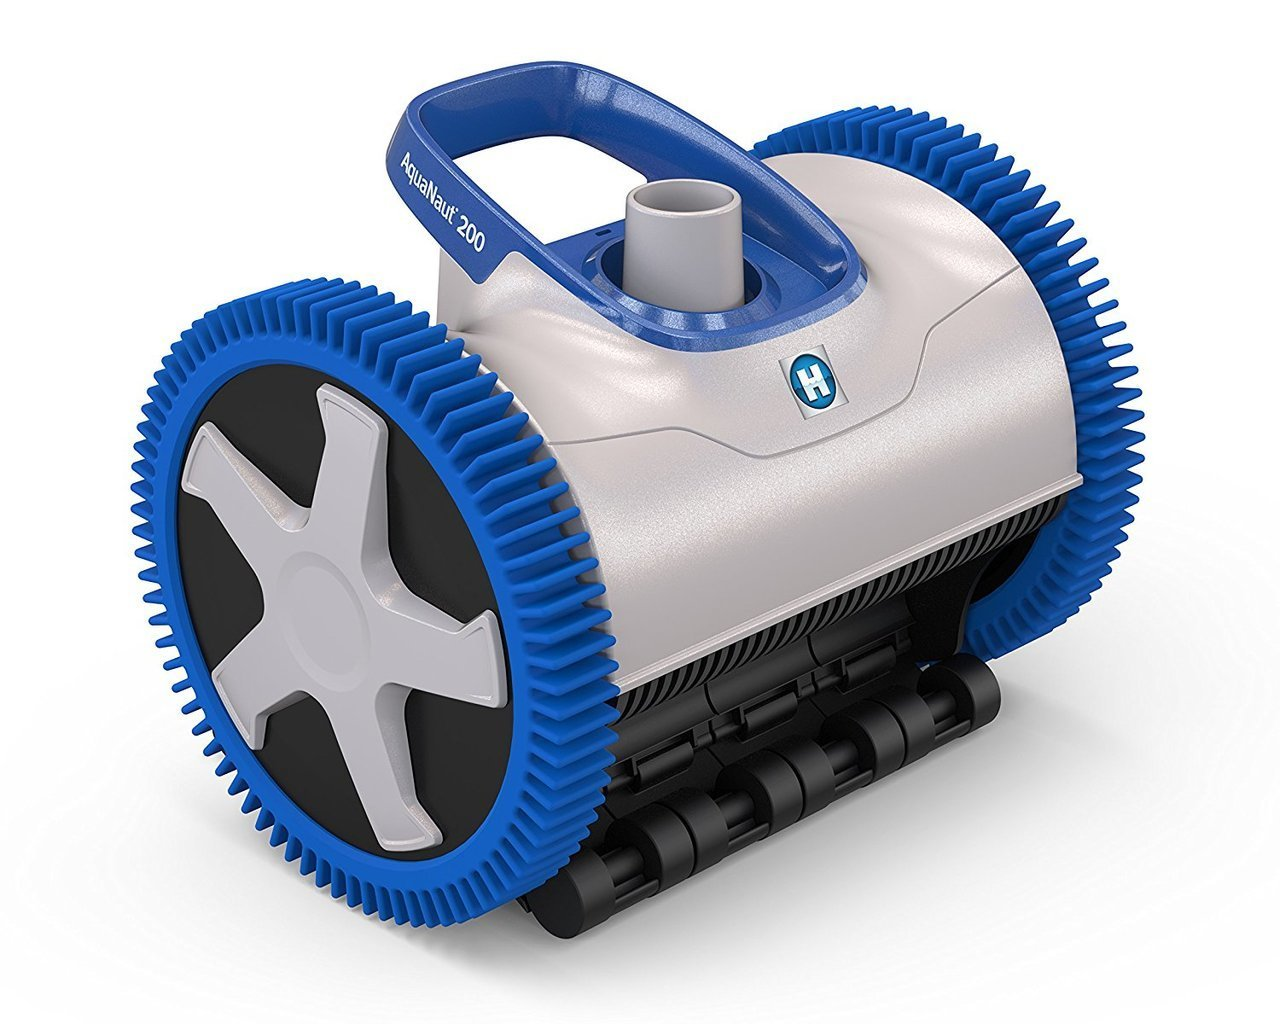 Aquanaut 200 2-Wheel Drive Suction Pool Cleaner